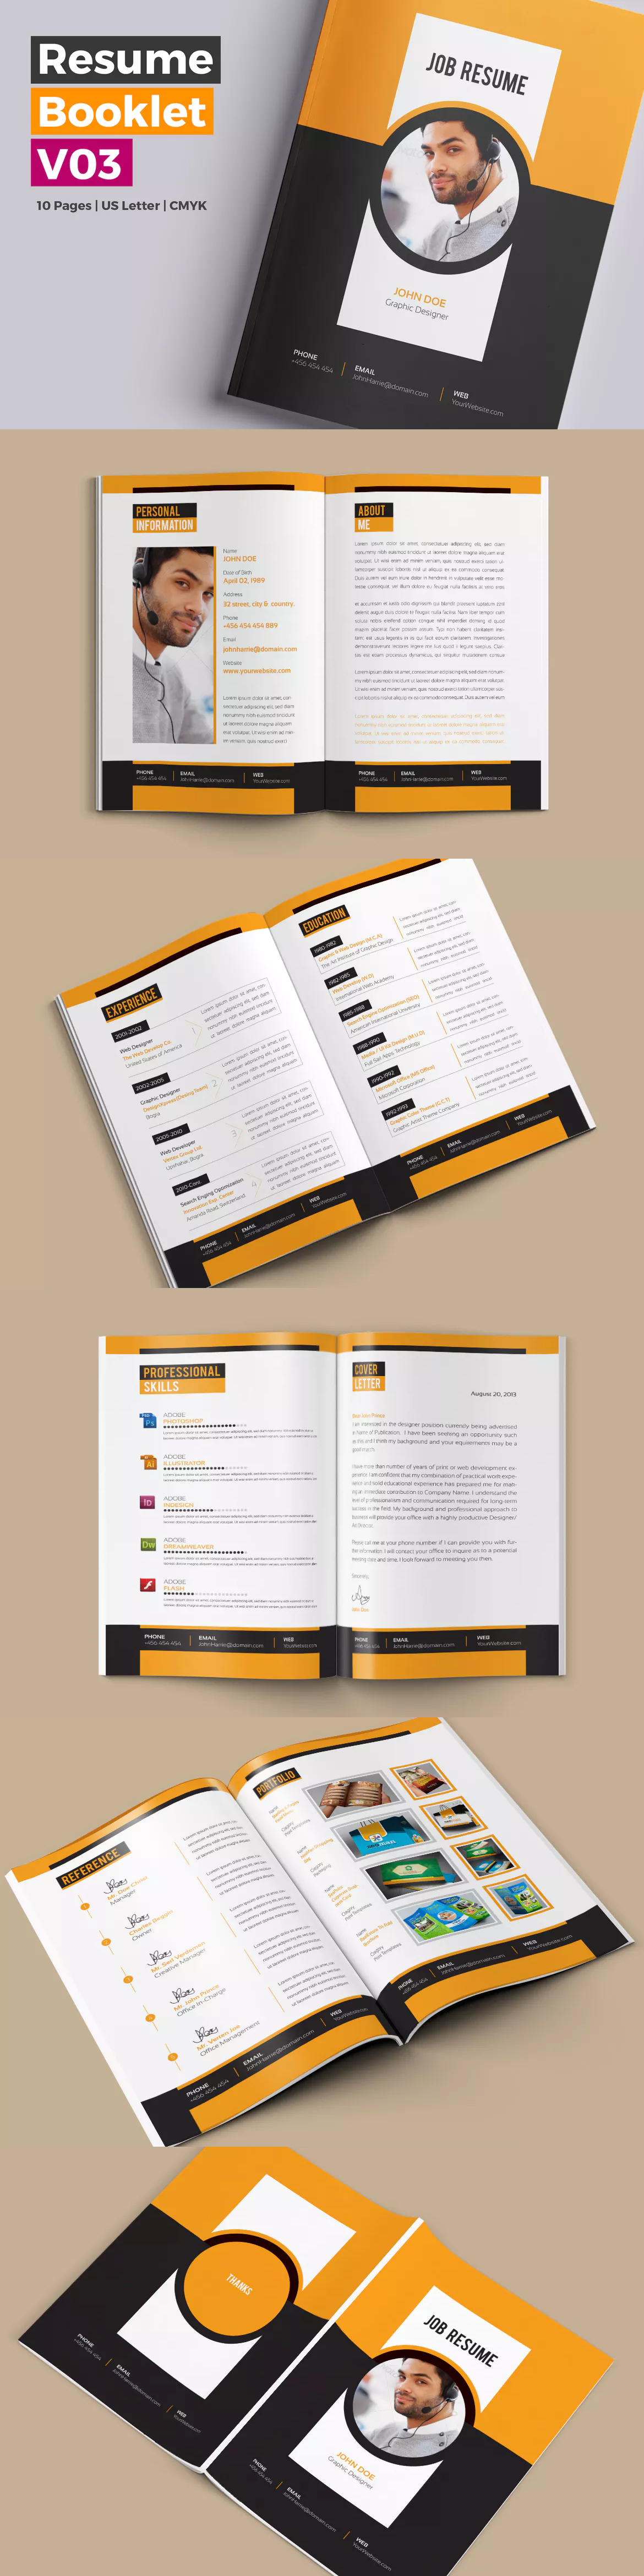 10 pages professional resume cv booklet template indesign indd